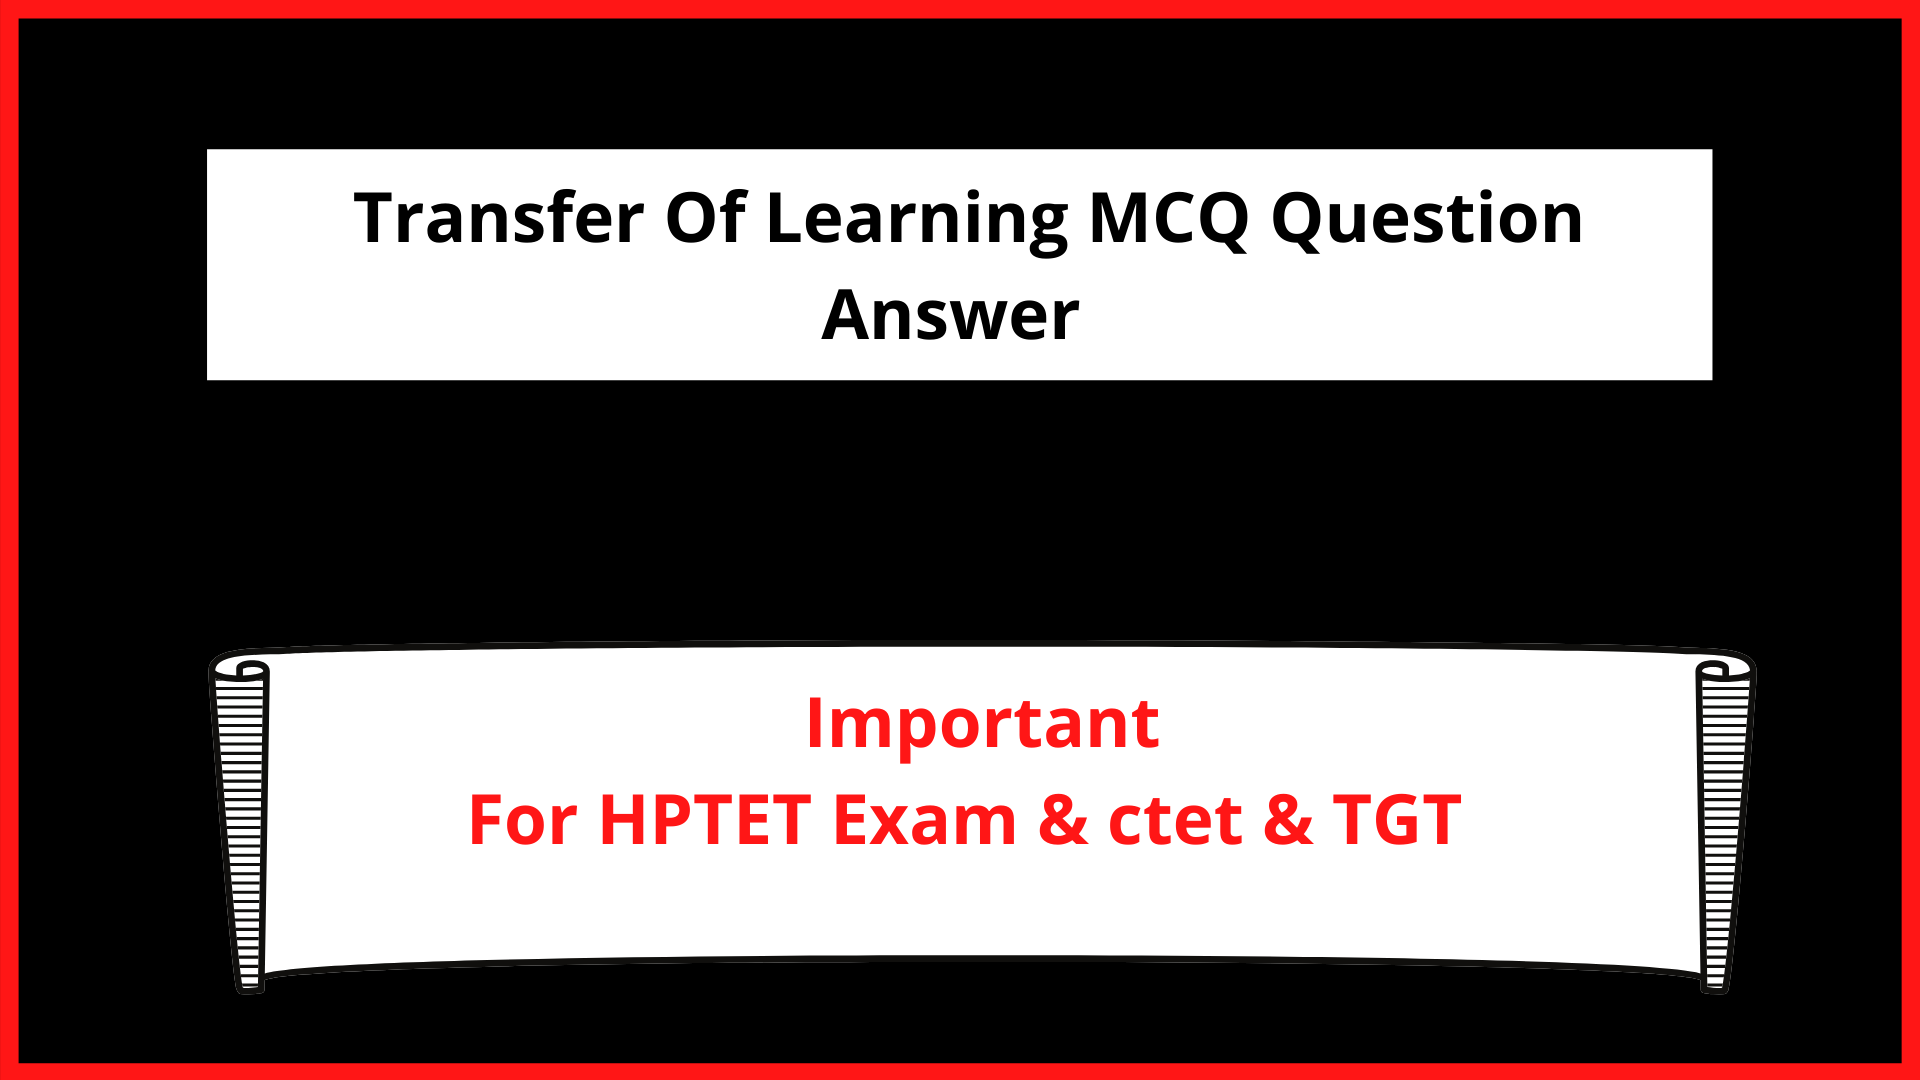 Transfer Of Learning MCQ Question Answer For HPTET Exam